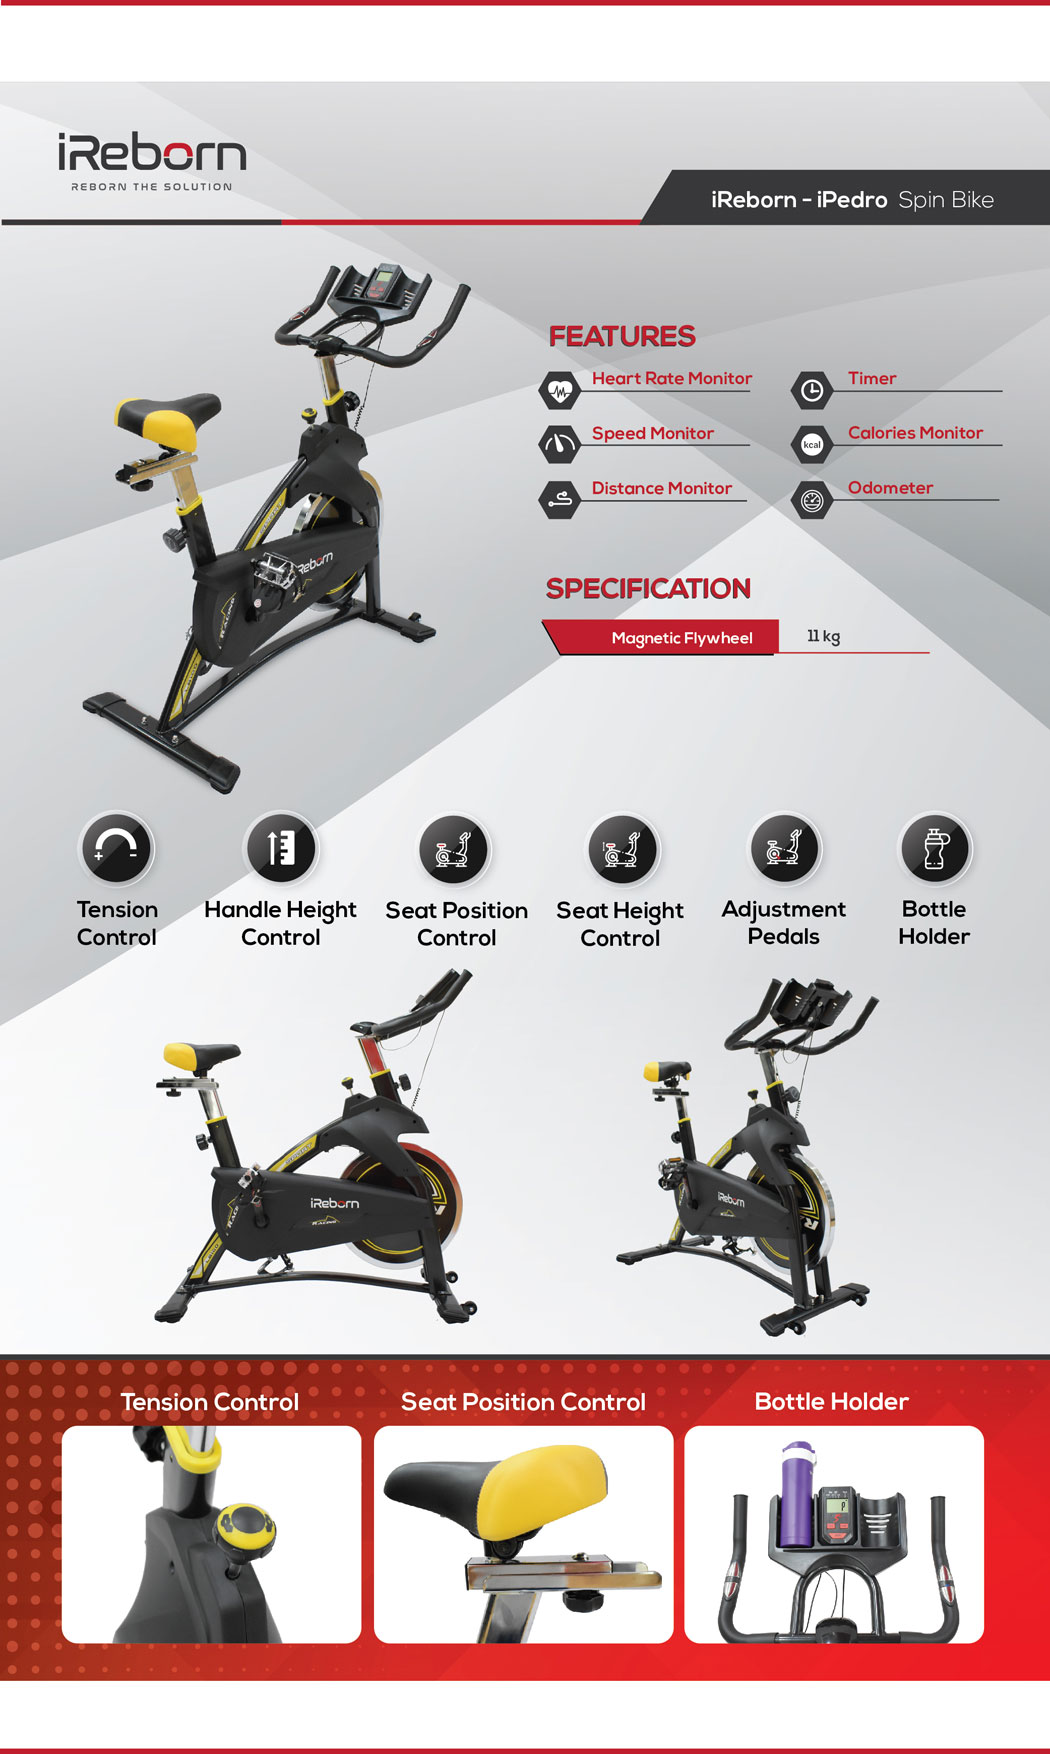 iPedro Spin Bike 18